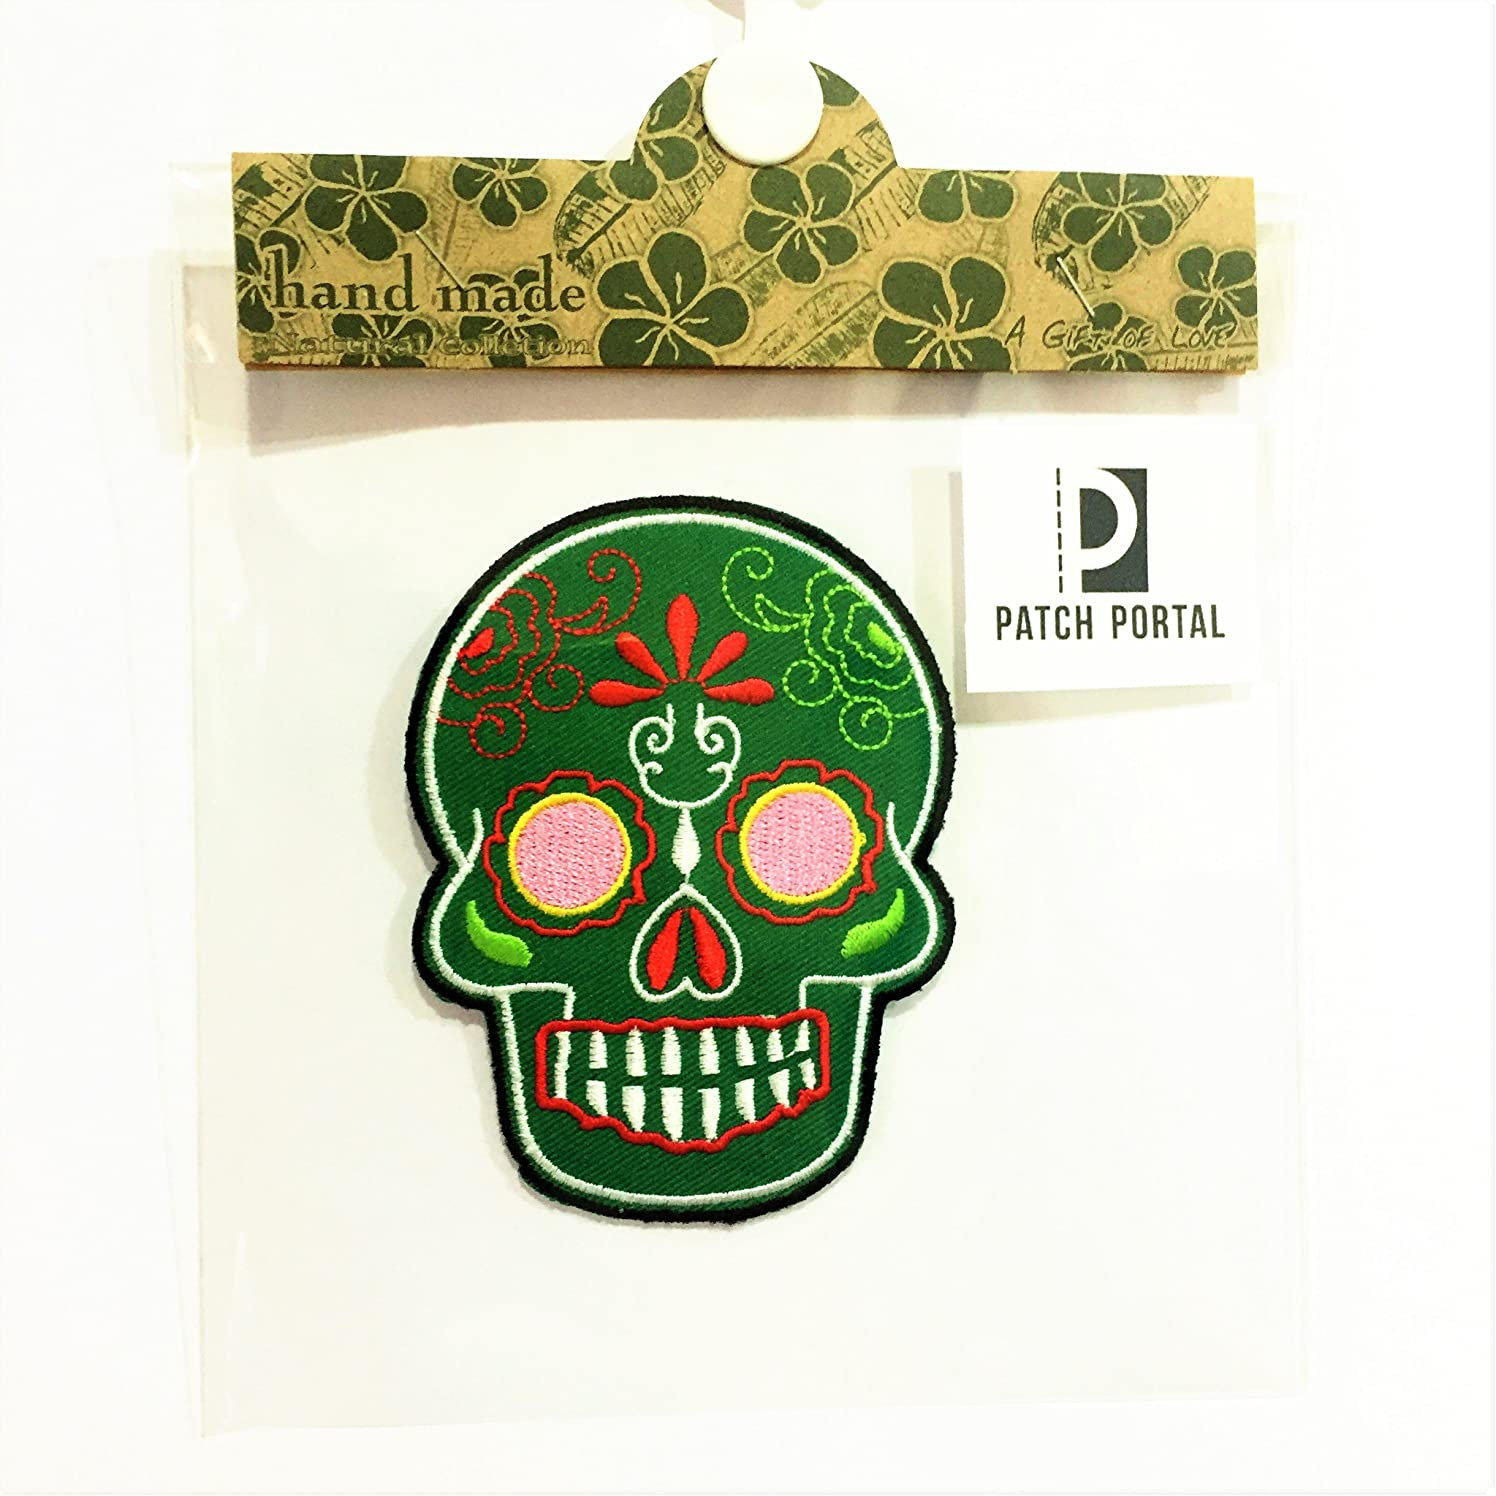 Patch Portal Skull Patches for Jackets Clothes Green Sugar Candy Day of The Dead Biker 3.5 inch Aztec Face Mask Embroidered Patches Chopper Motorcycle Club DIY Applique Sewn Iron-On